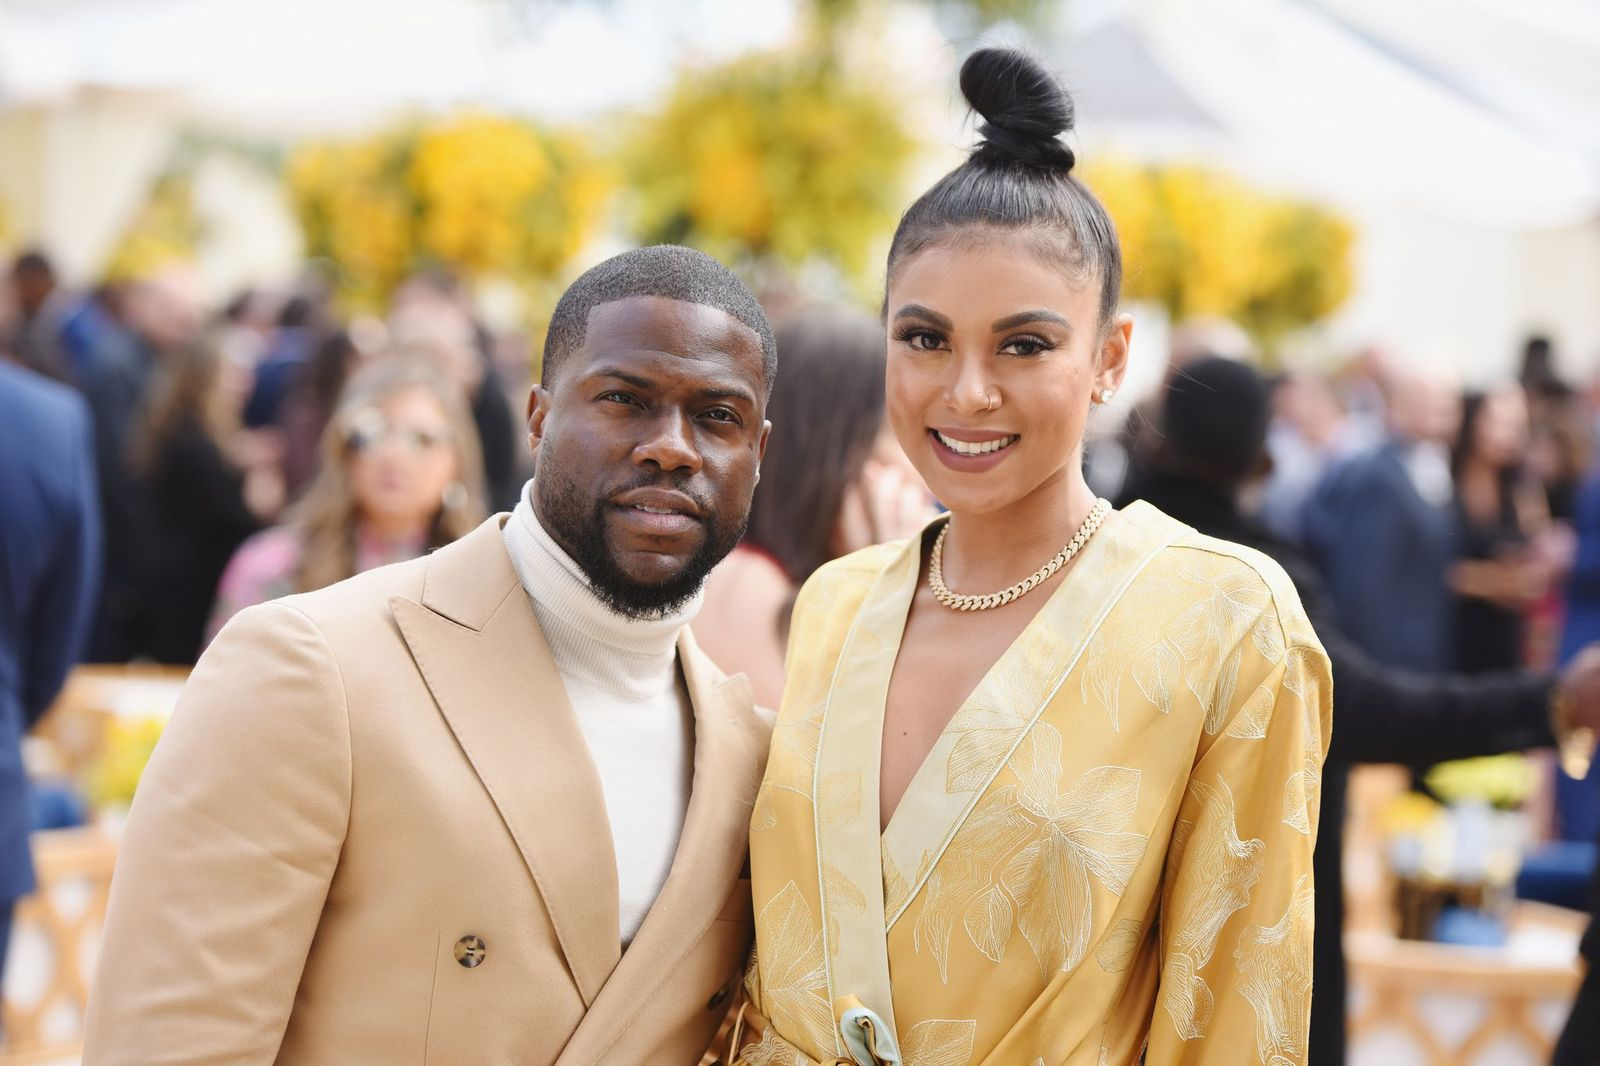 Kevin Hart and Eniko Parrish at 2019 Roc Nation THE BRUNCH on February 9, 2019 | Photo: Getty Images